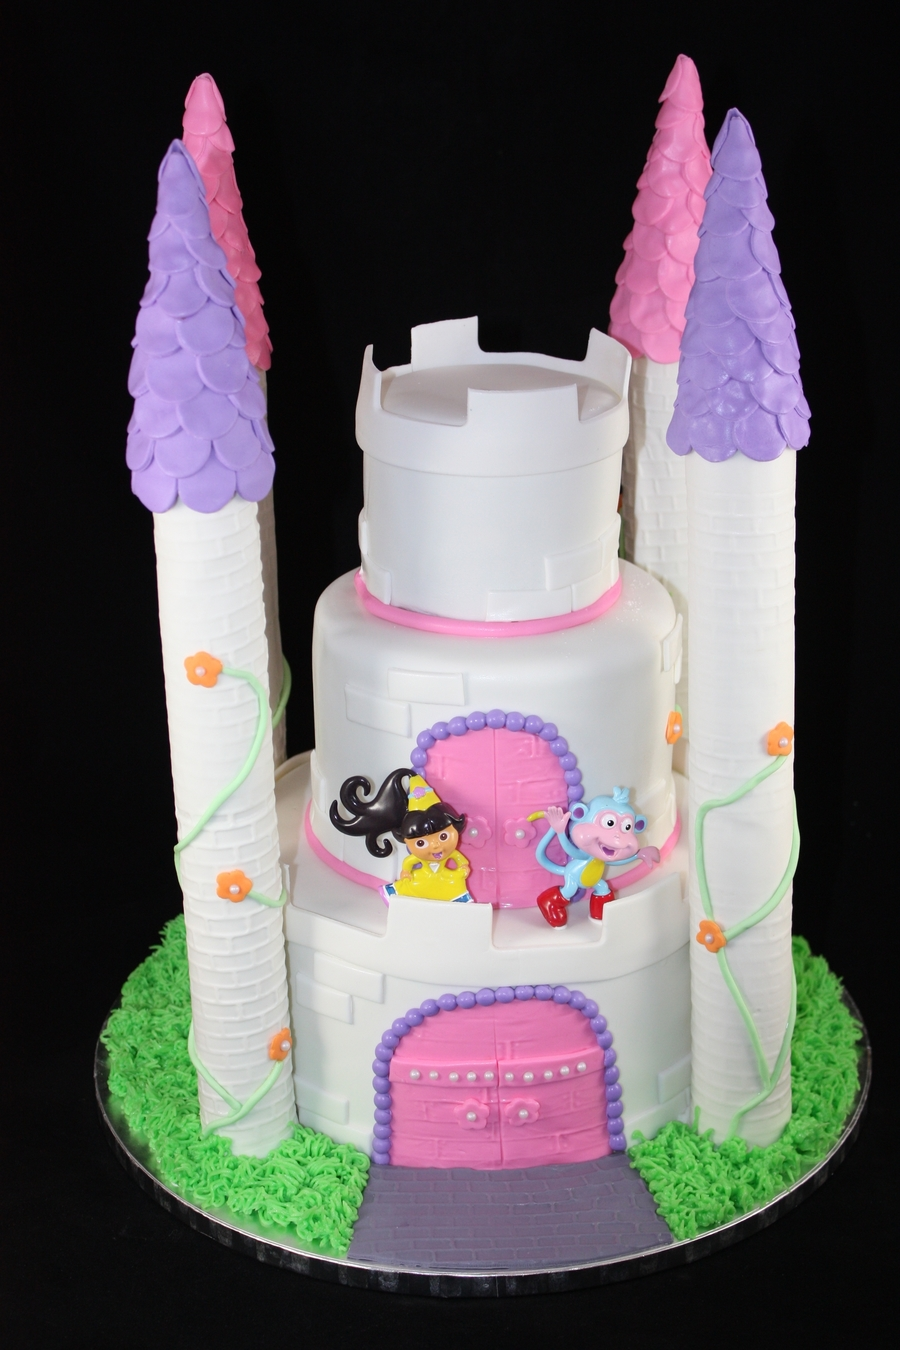 Dora Princess Cake  on Cake Central